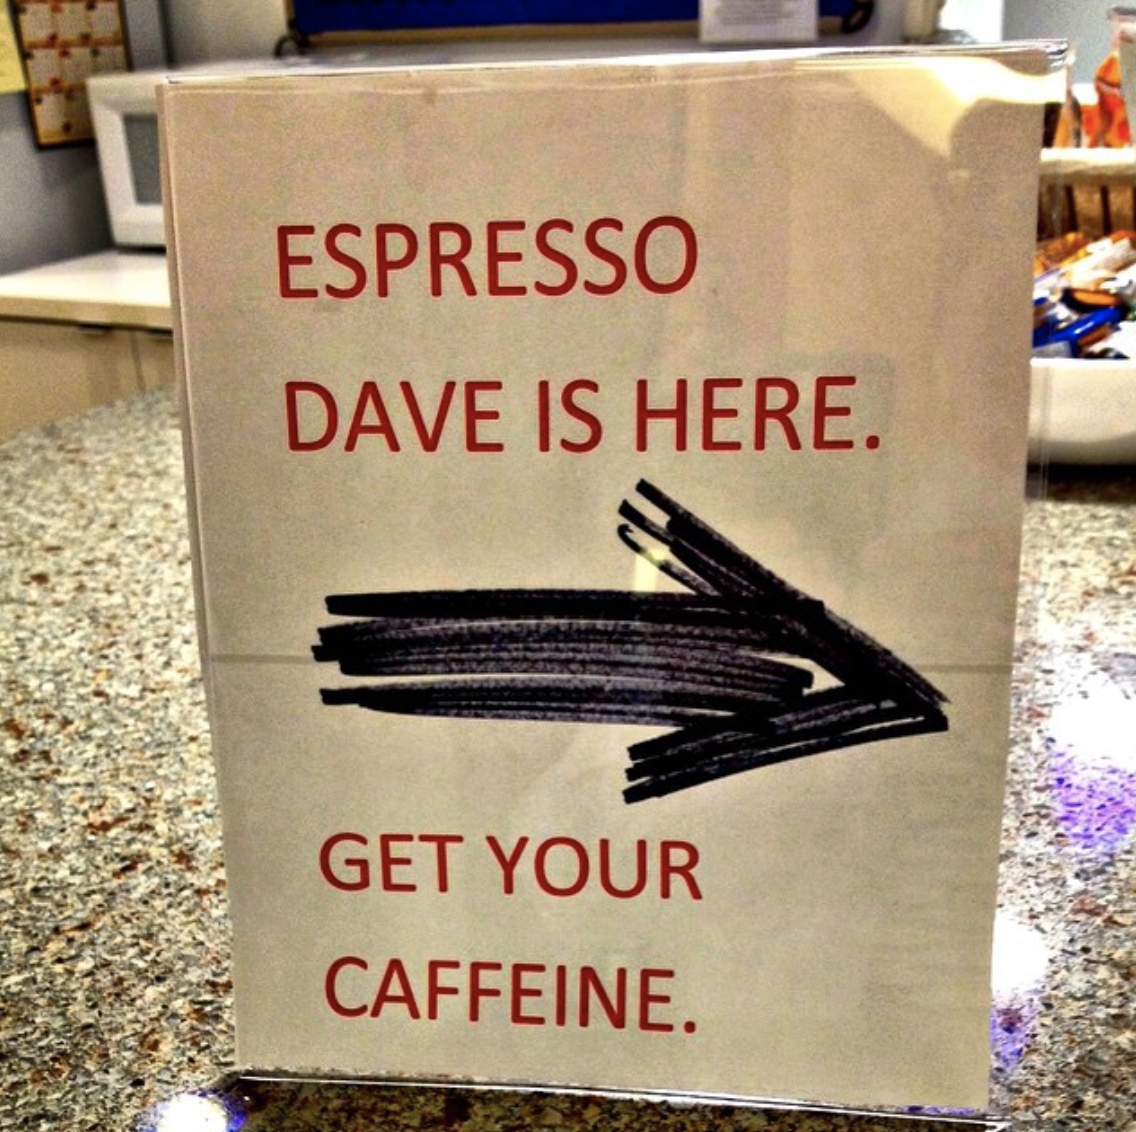 Take your coffee at work to new heights! Learn the perks behind this hot commodity from Boston's Espresso Dave's Coffee Catering. www.espressodave.com #employeeappreciation #perks #coffee #staffmoraleboosteroffices #staffmoralebooster #coffeecatering #boston